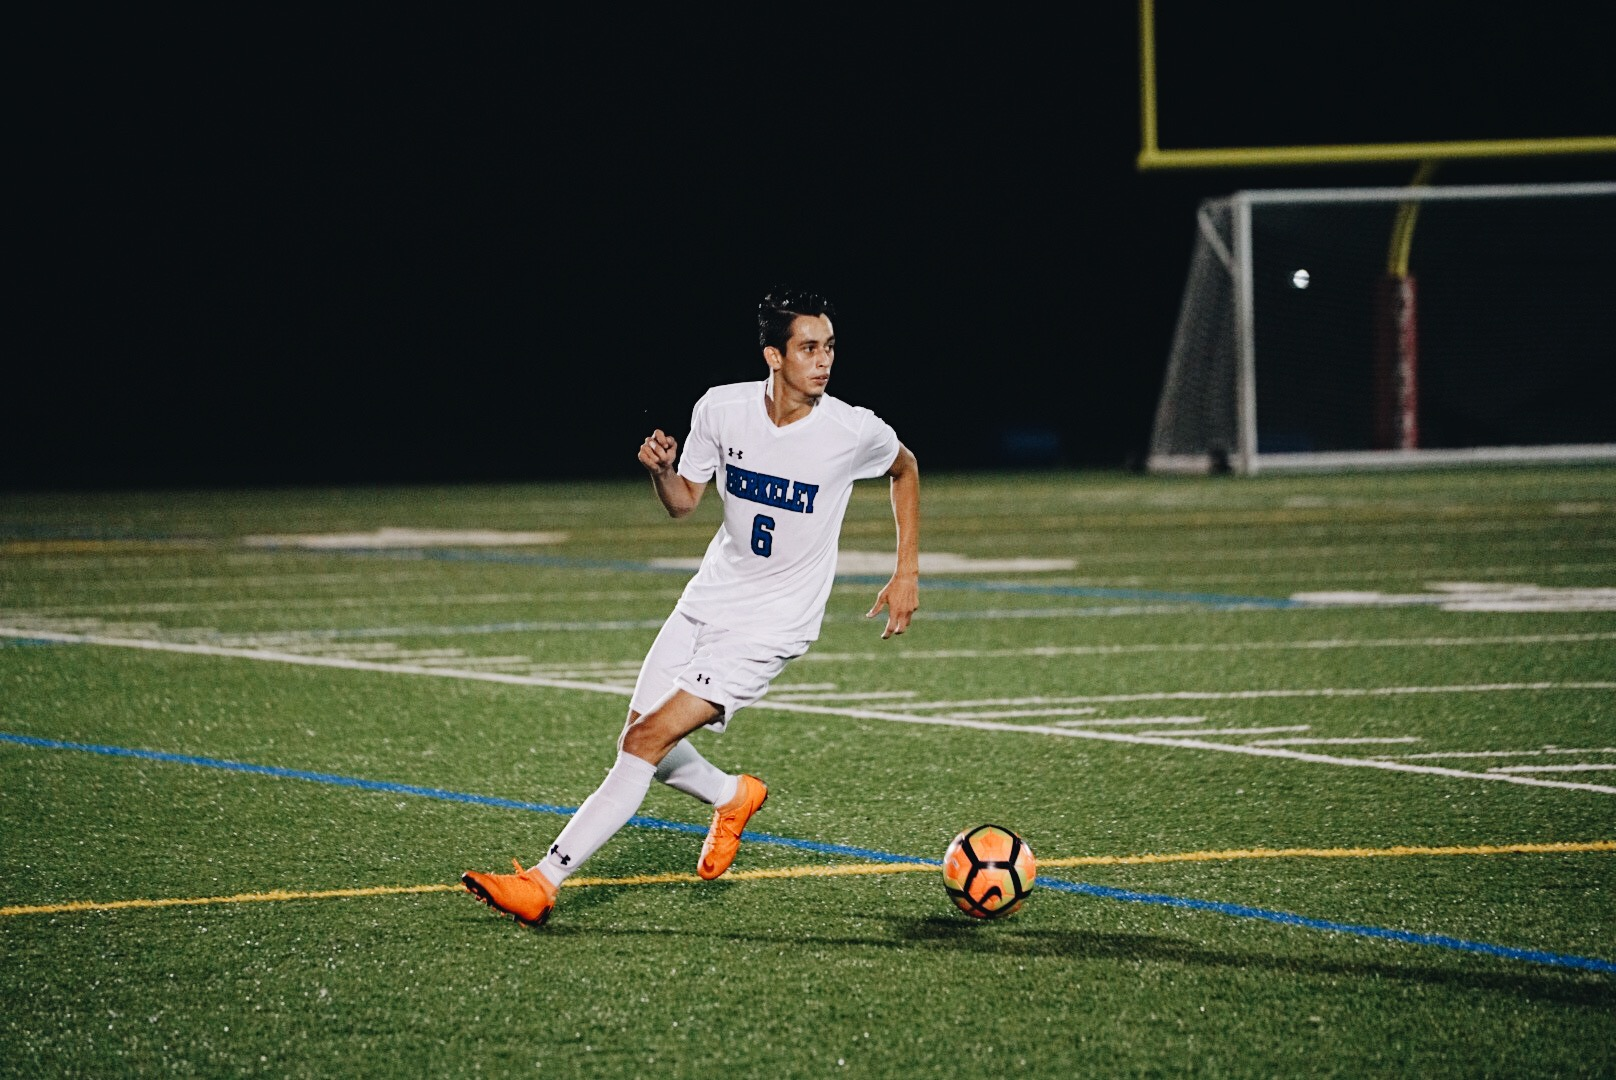 Men's Soccer: Berkeley 2, SUNY-ESF 0